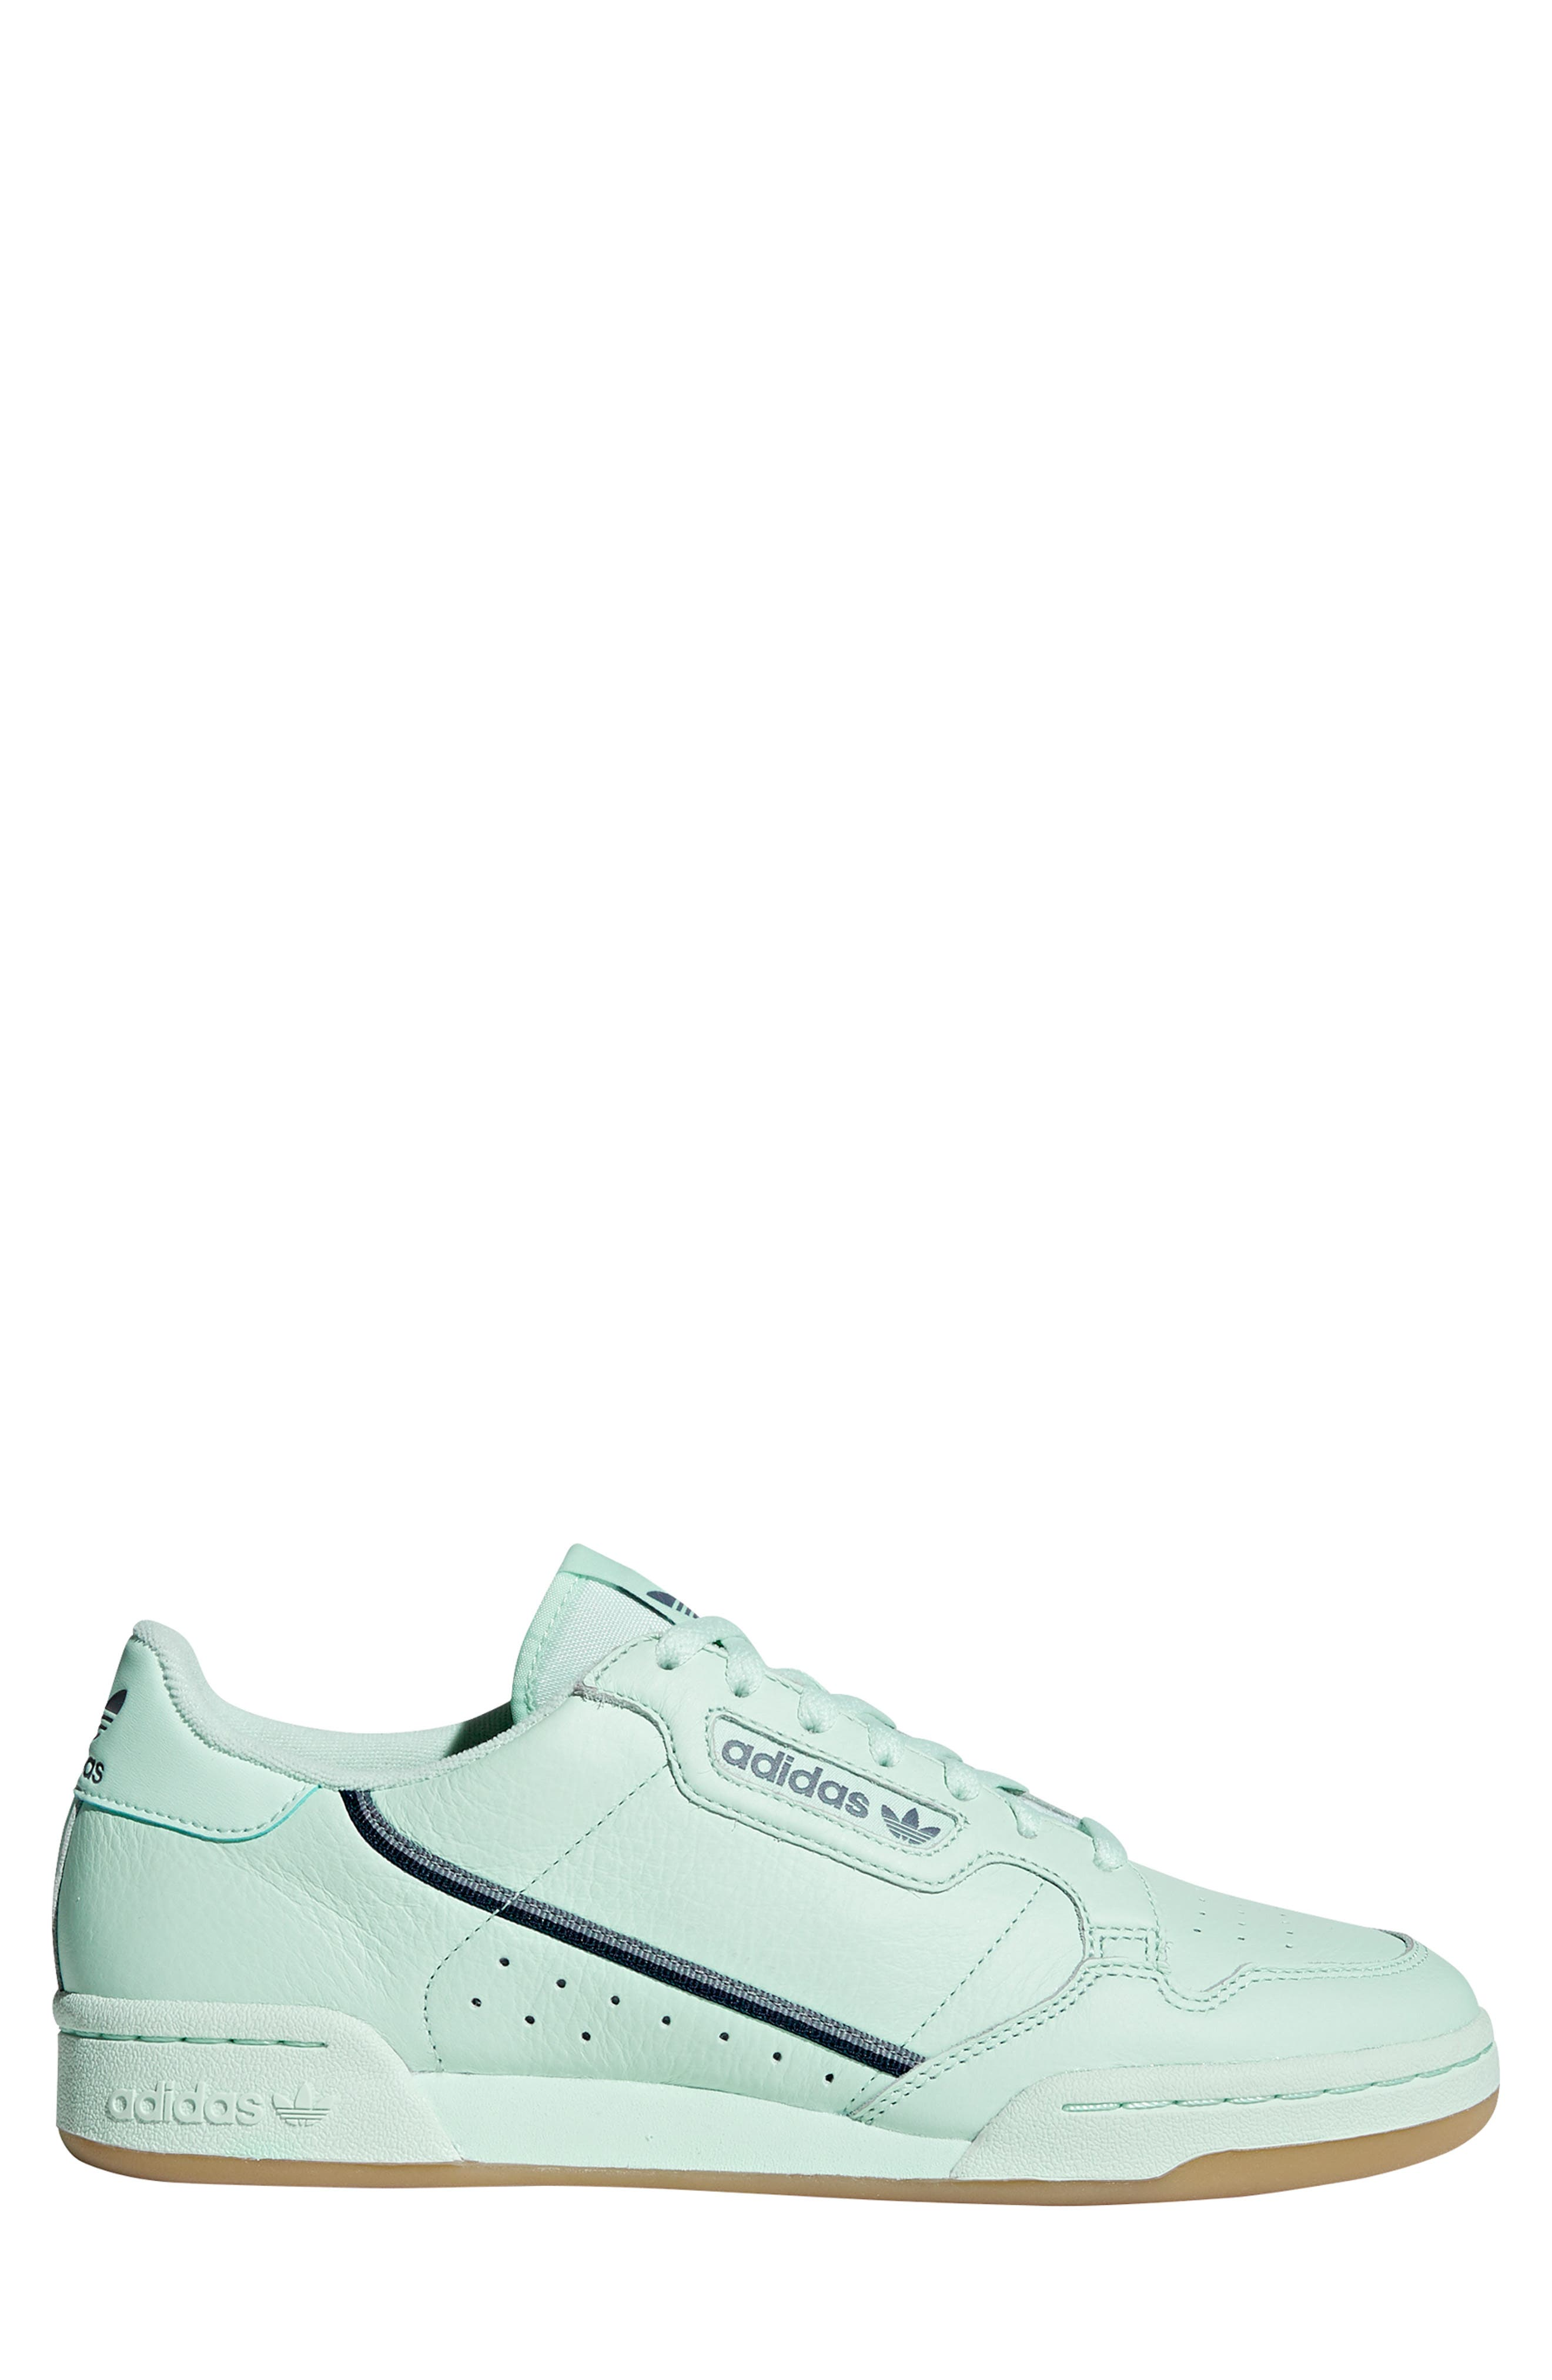 ADIDAS, Continental 80 Sneaker, Alternate thumbnail 3, color, ICE MINT/ NAVY/ GREY